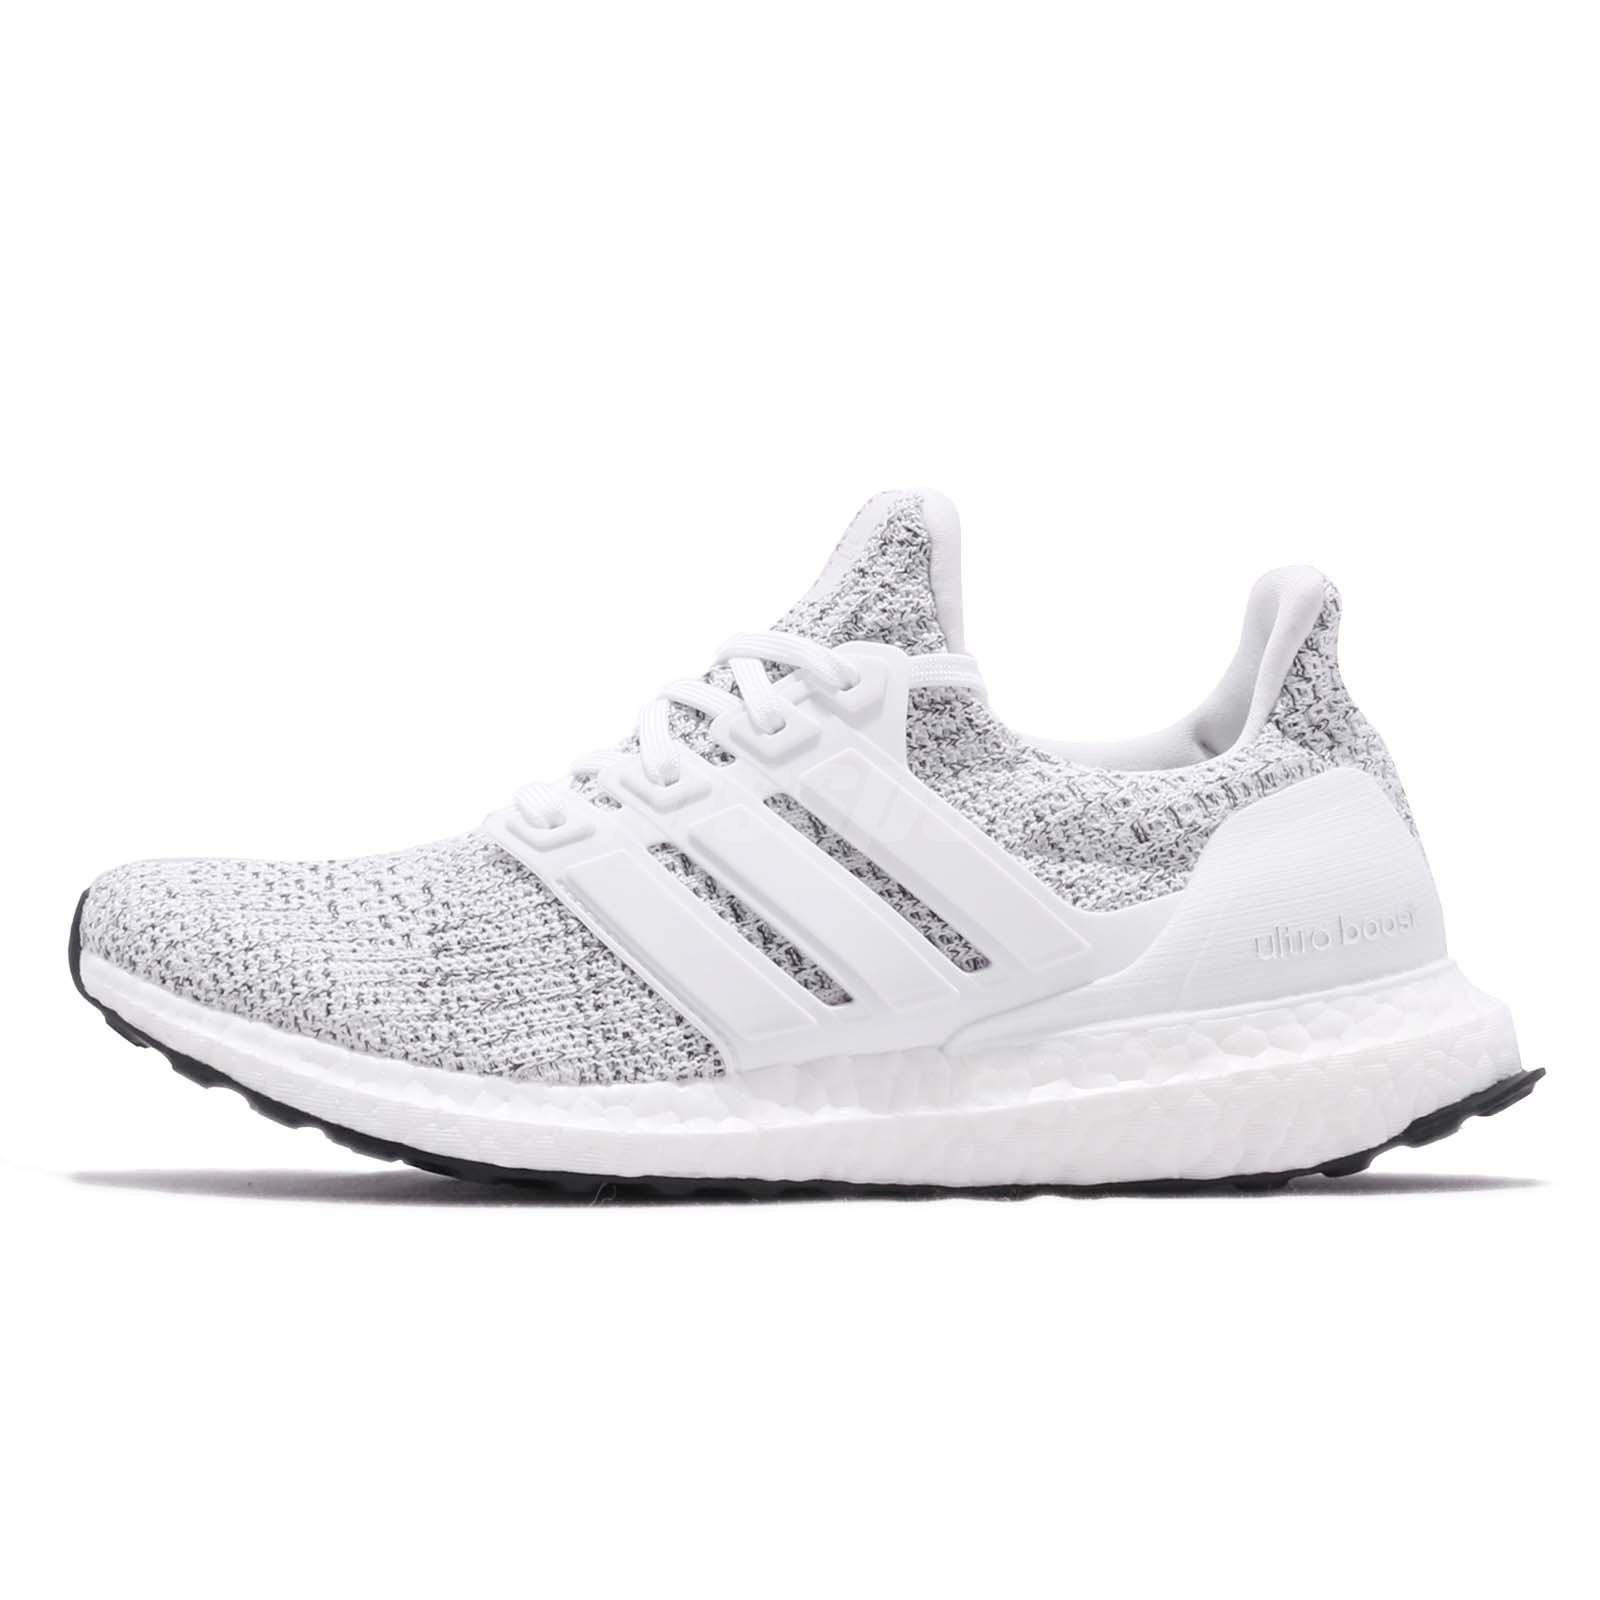 7e8fef48ea adidas UltraBOOST W 4.0 Non Dyed White Women Running Shoes Sneakers F36124